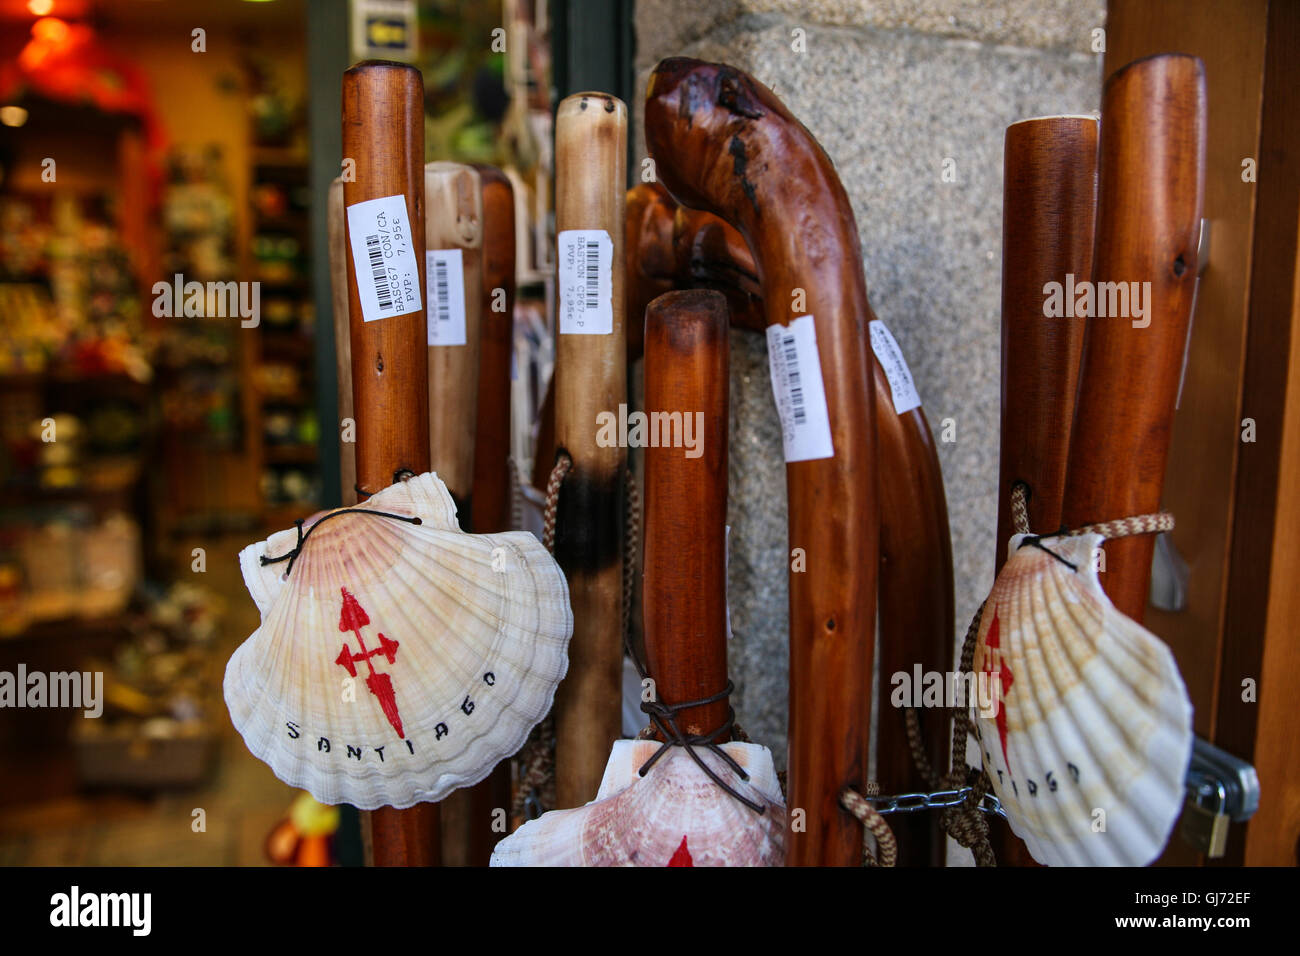 Pilgrim staff's, walking sticks for sale at this tourist shop in the Old Town of Santiago de Compestela. The - Stock Image